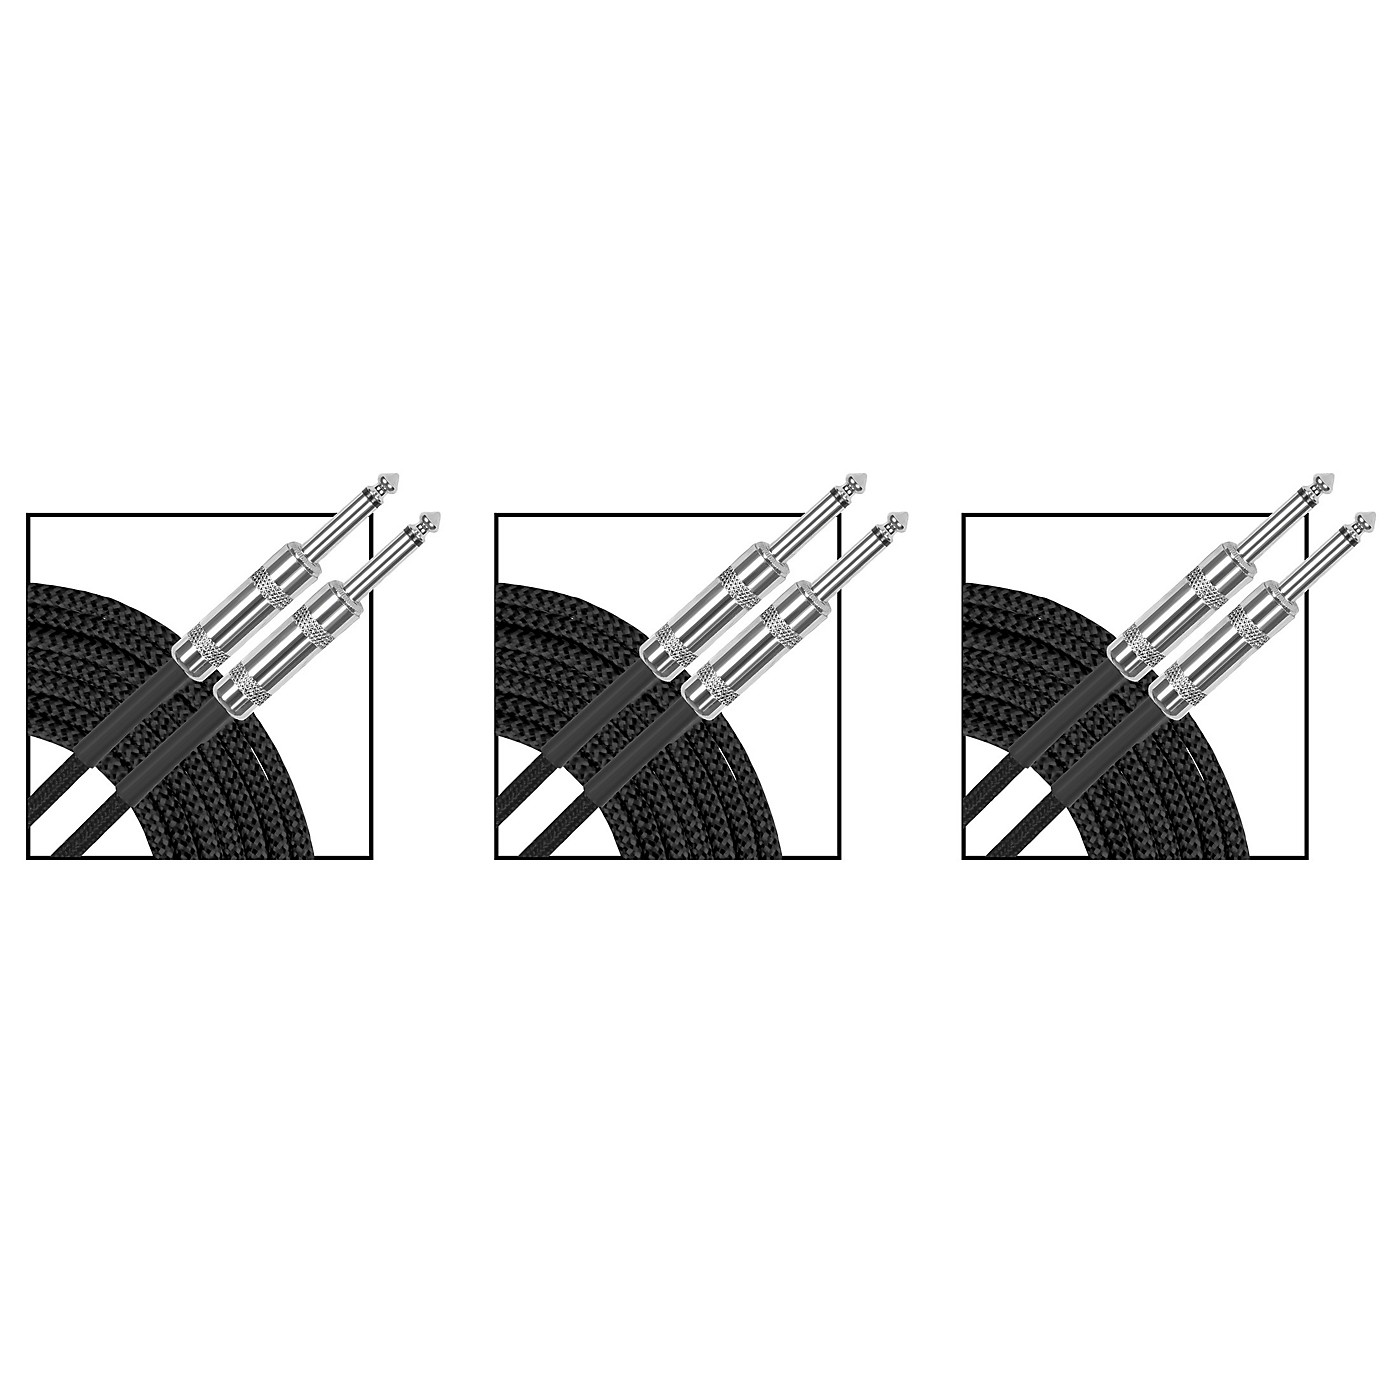 Musician's Gear Standard Instrument Cable Braid - 20 ft. - 3 Pack thumbnail